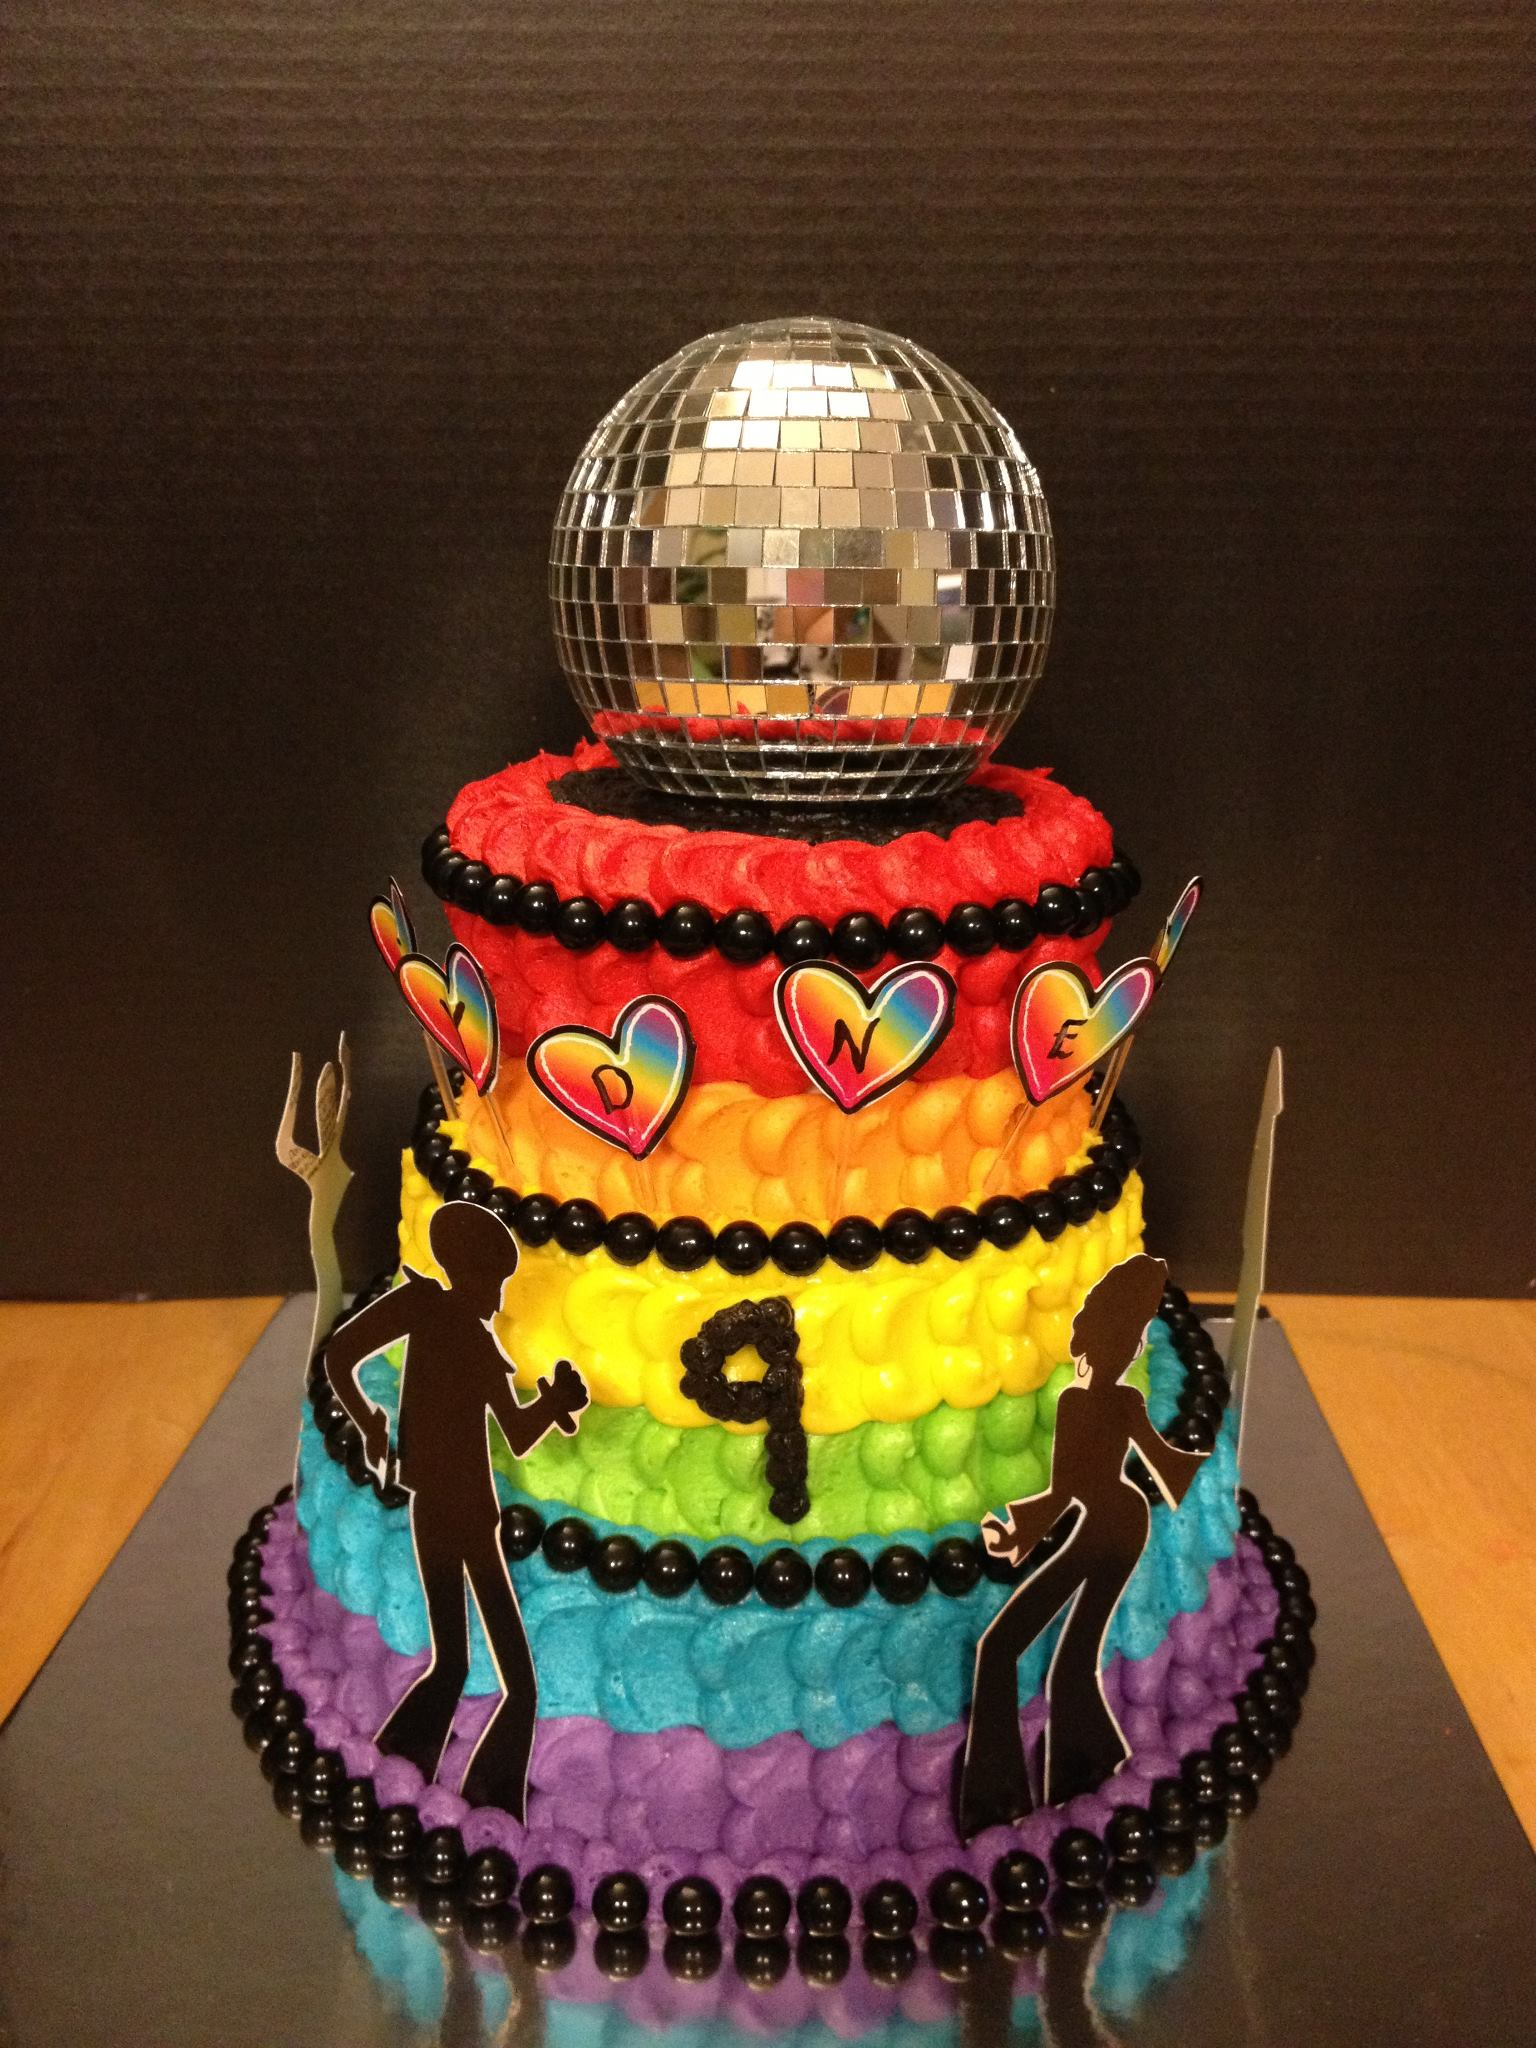 Disco Fever Themed Birthday Cake Buttercream, Sixlets & Paper Decor complete with Mirror Ball